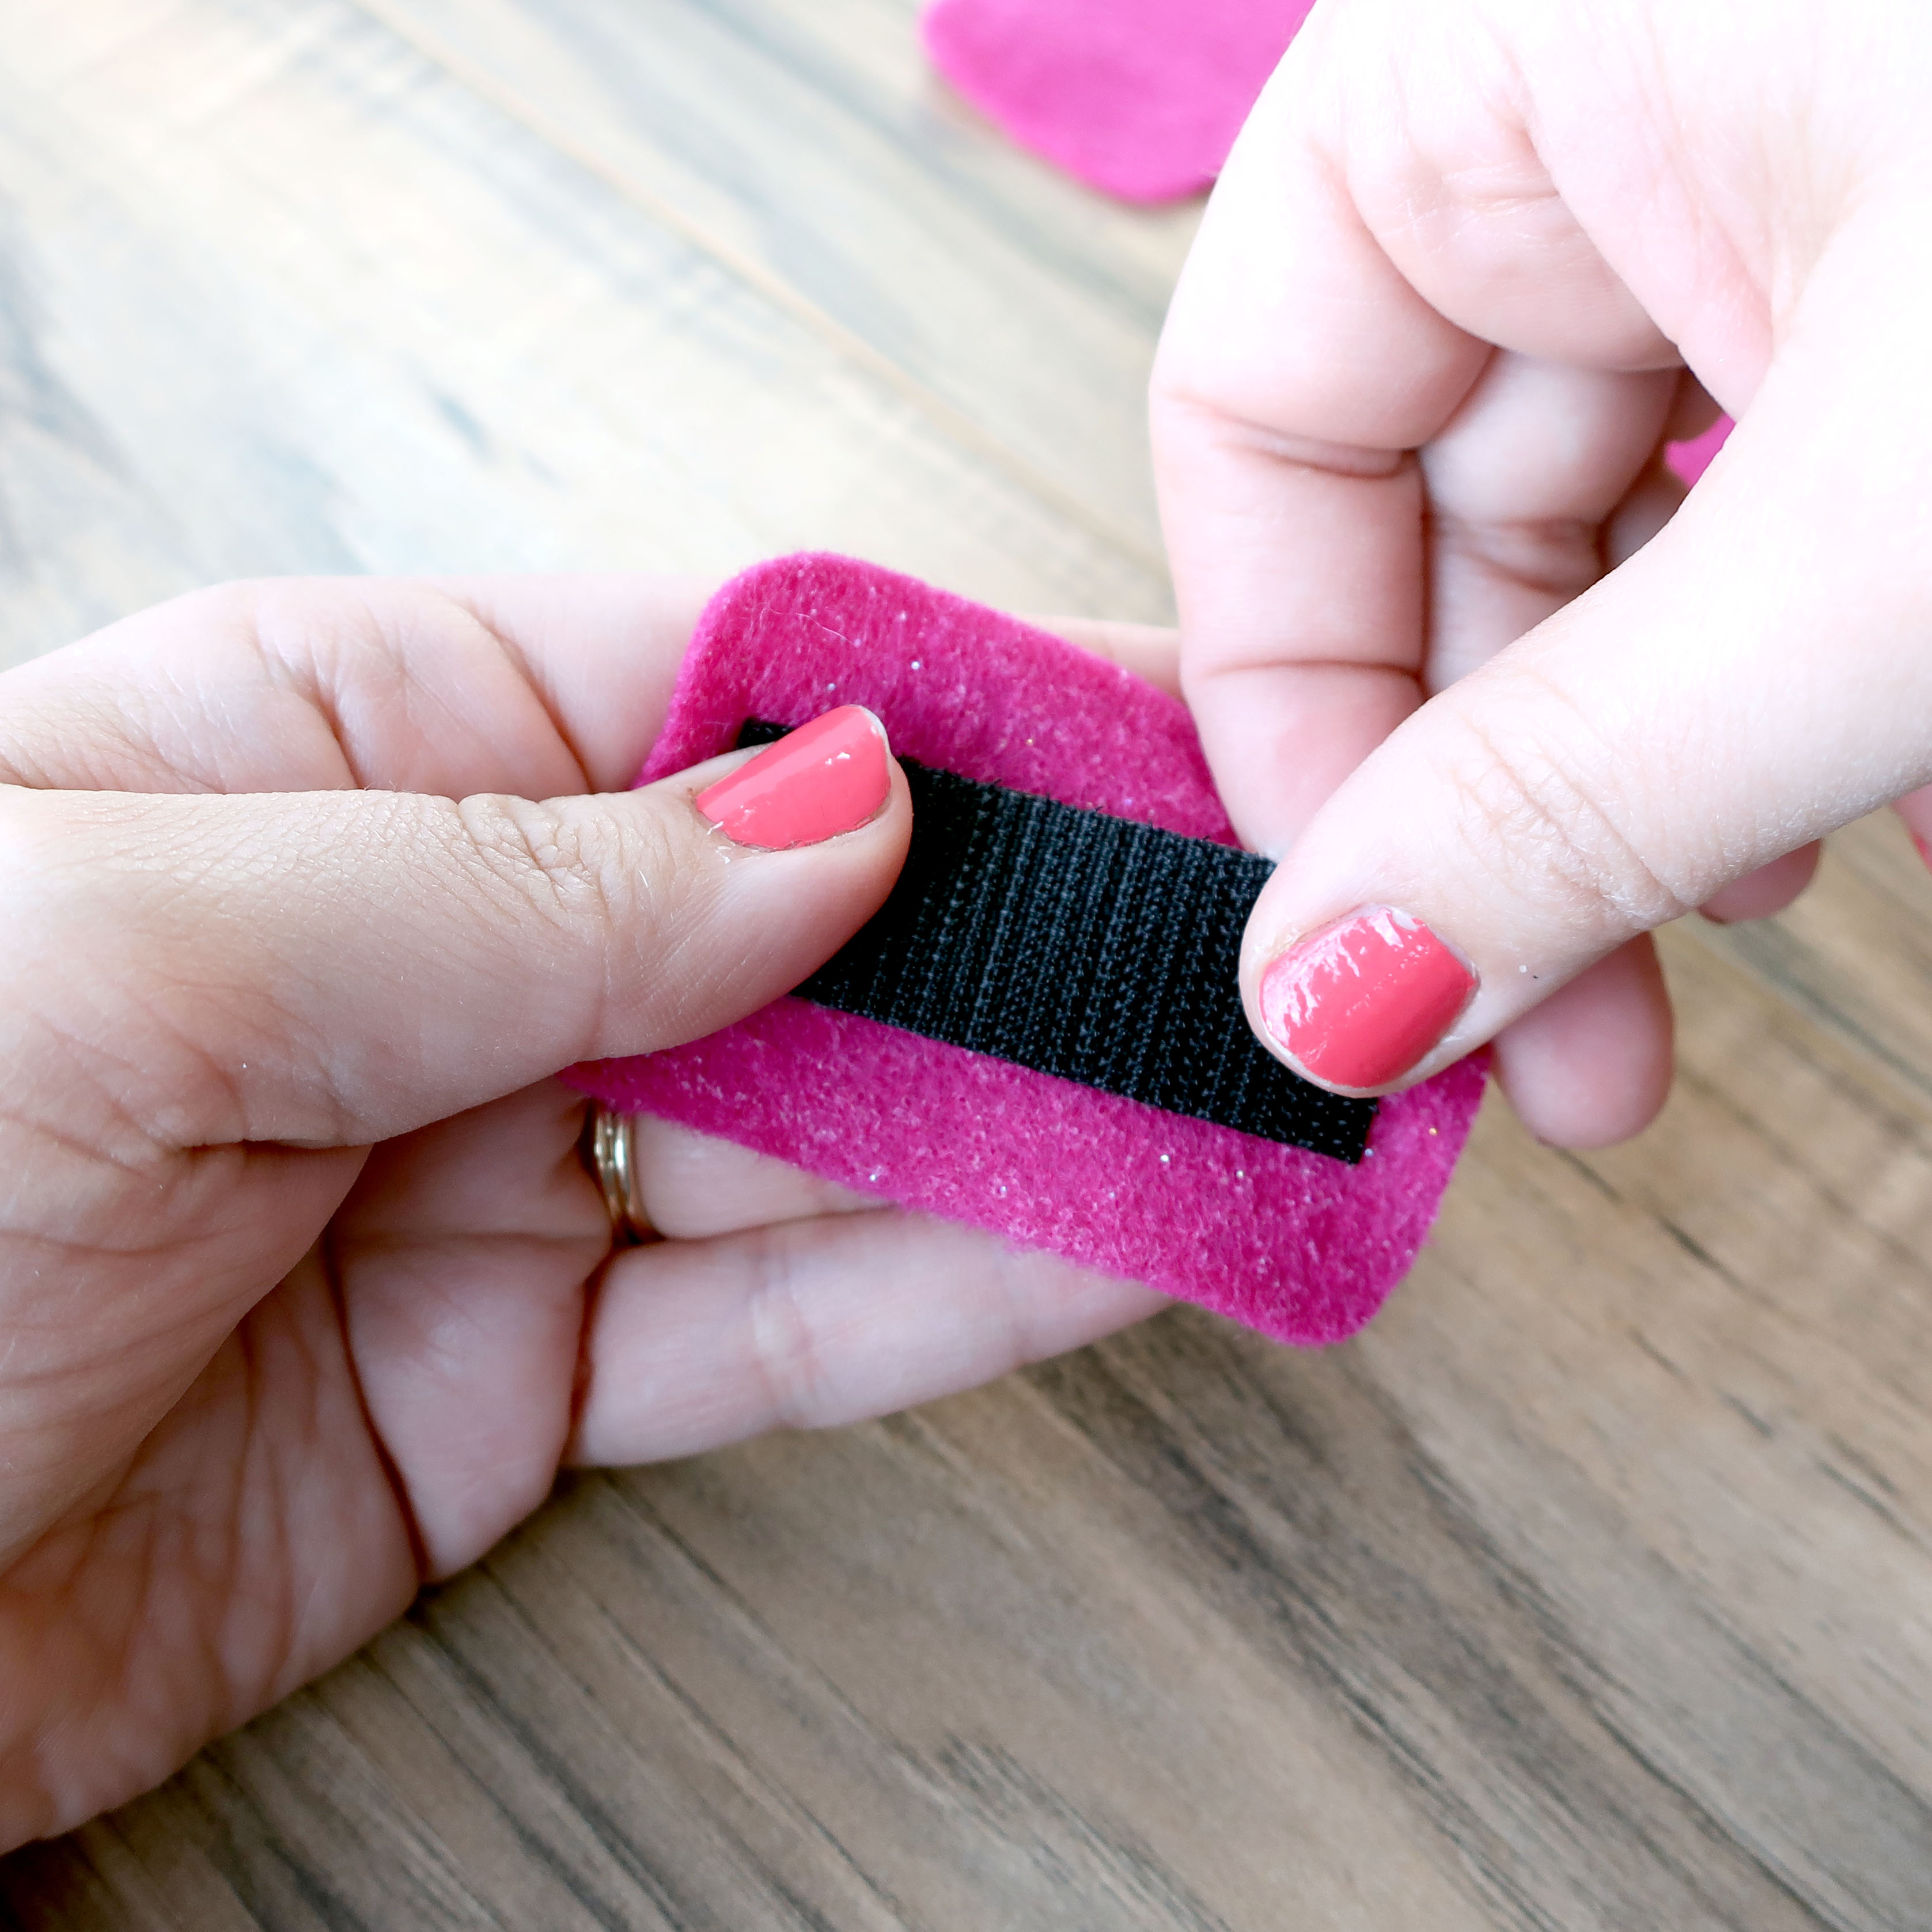 Afix the fastener's adhesive to the felt